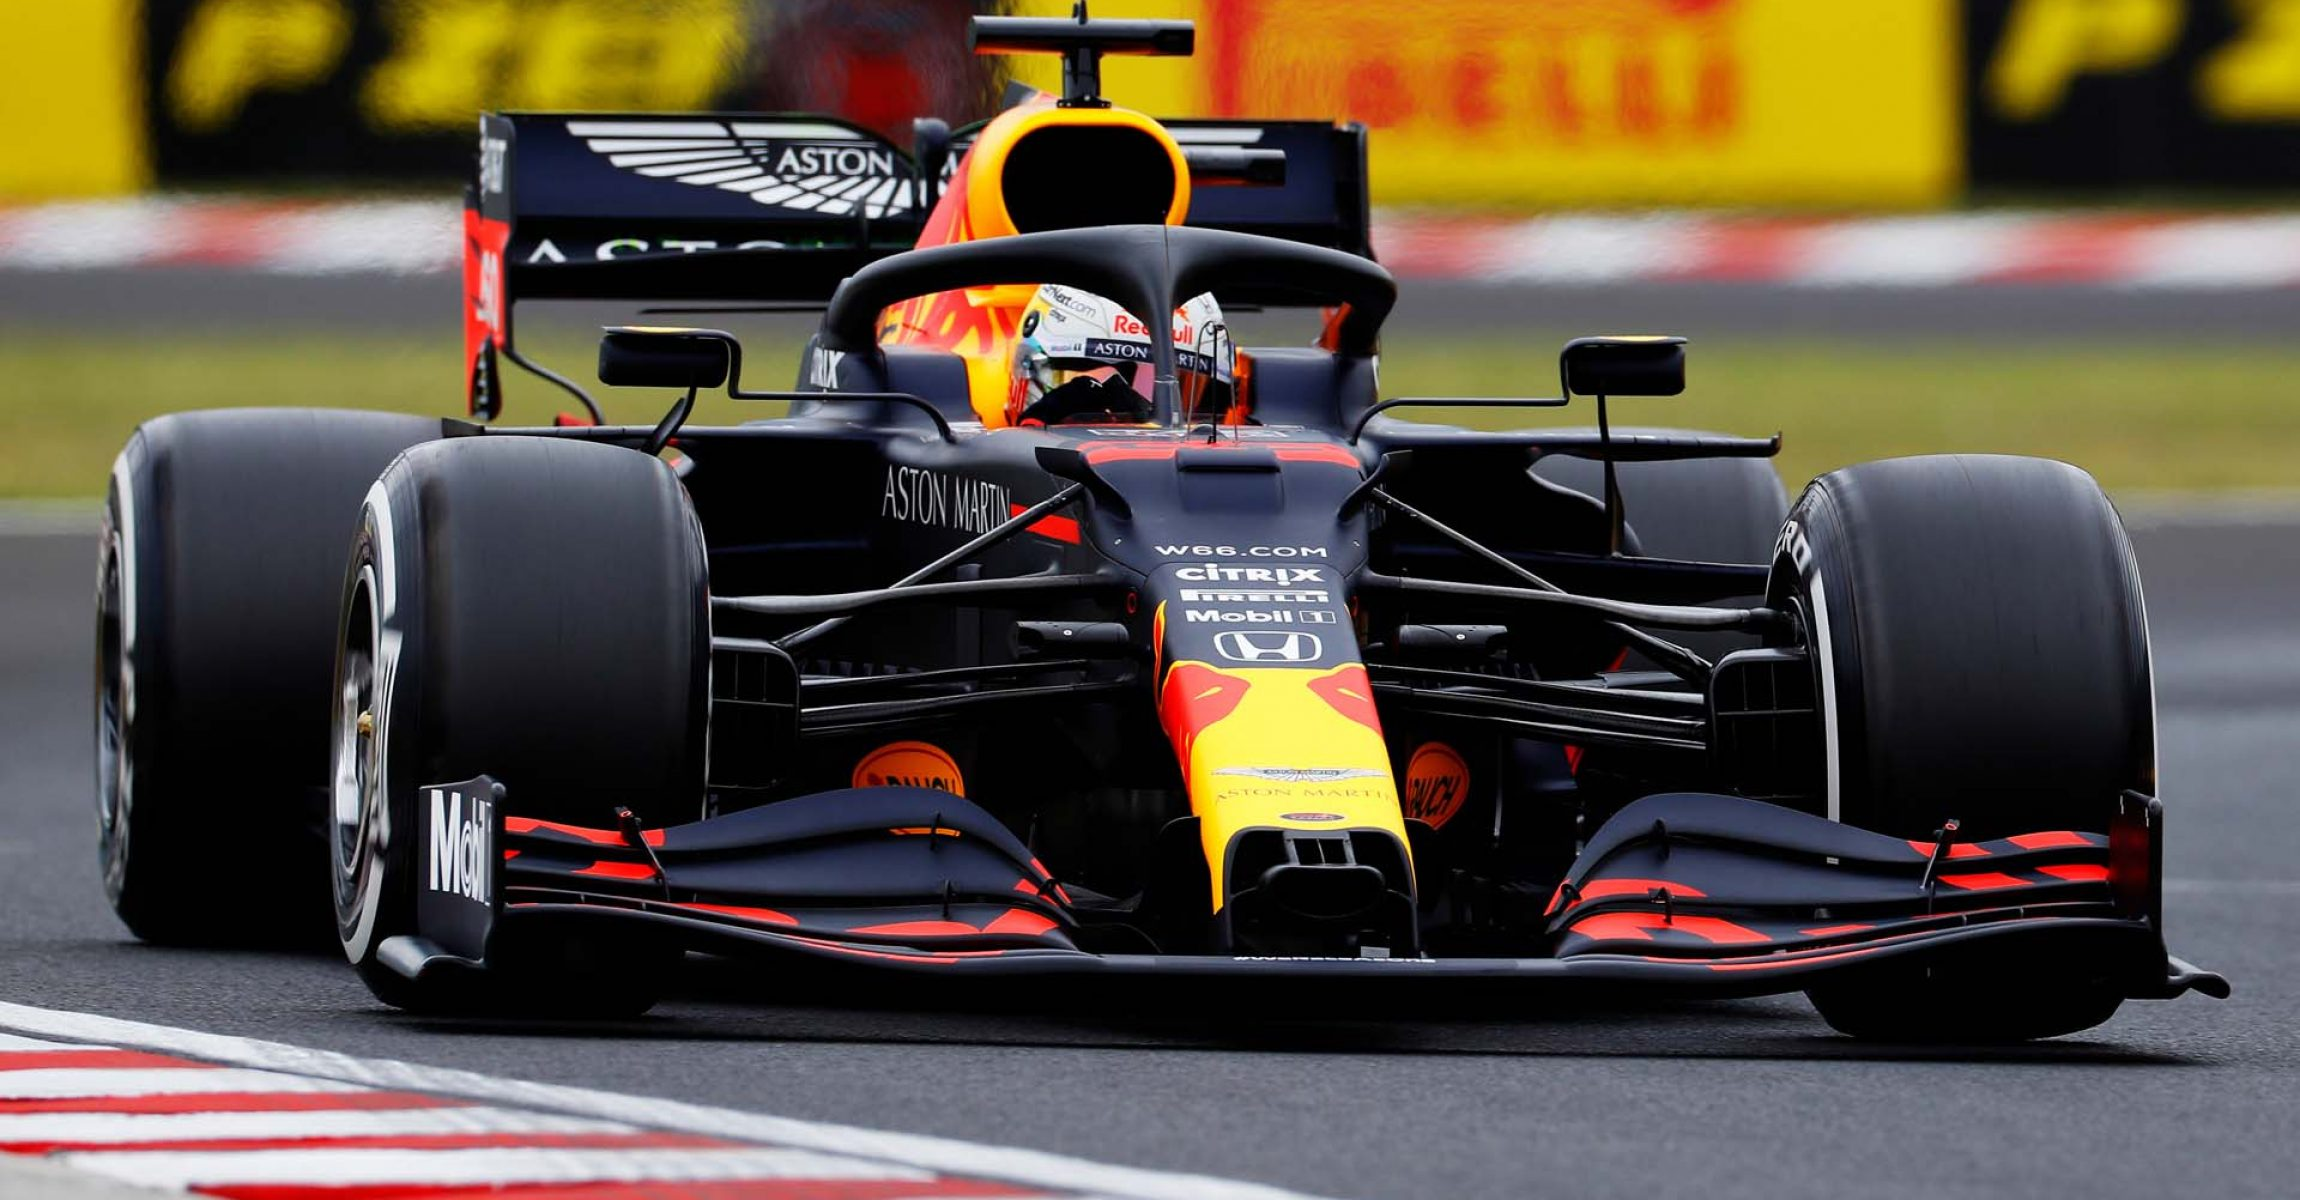 BUDAPEST, HUNGARY - JULY 17: Max Verstappen of the Netherlands driving the (33) Aston Martin Red Bull Racing RB16 on track during practice for the F1 Grand Prix of Hungary at Hungaroring on July 17, 2020 in Budapest, Hungary. (Photo by Leonhard Foeger/Pool via Getty Images) // Getty Images / Red Bull Content Pool // AP-24NGFMU2D1W11 // Usage for editorial use only //